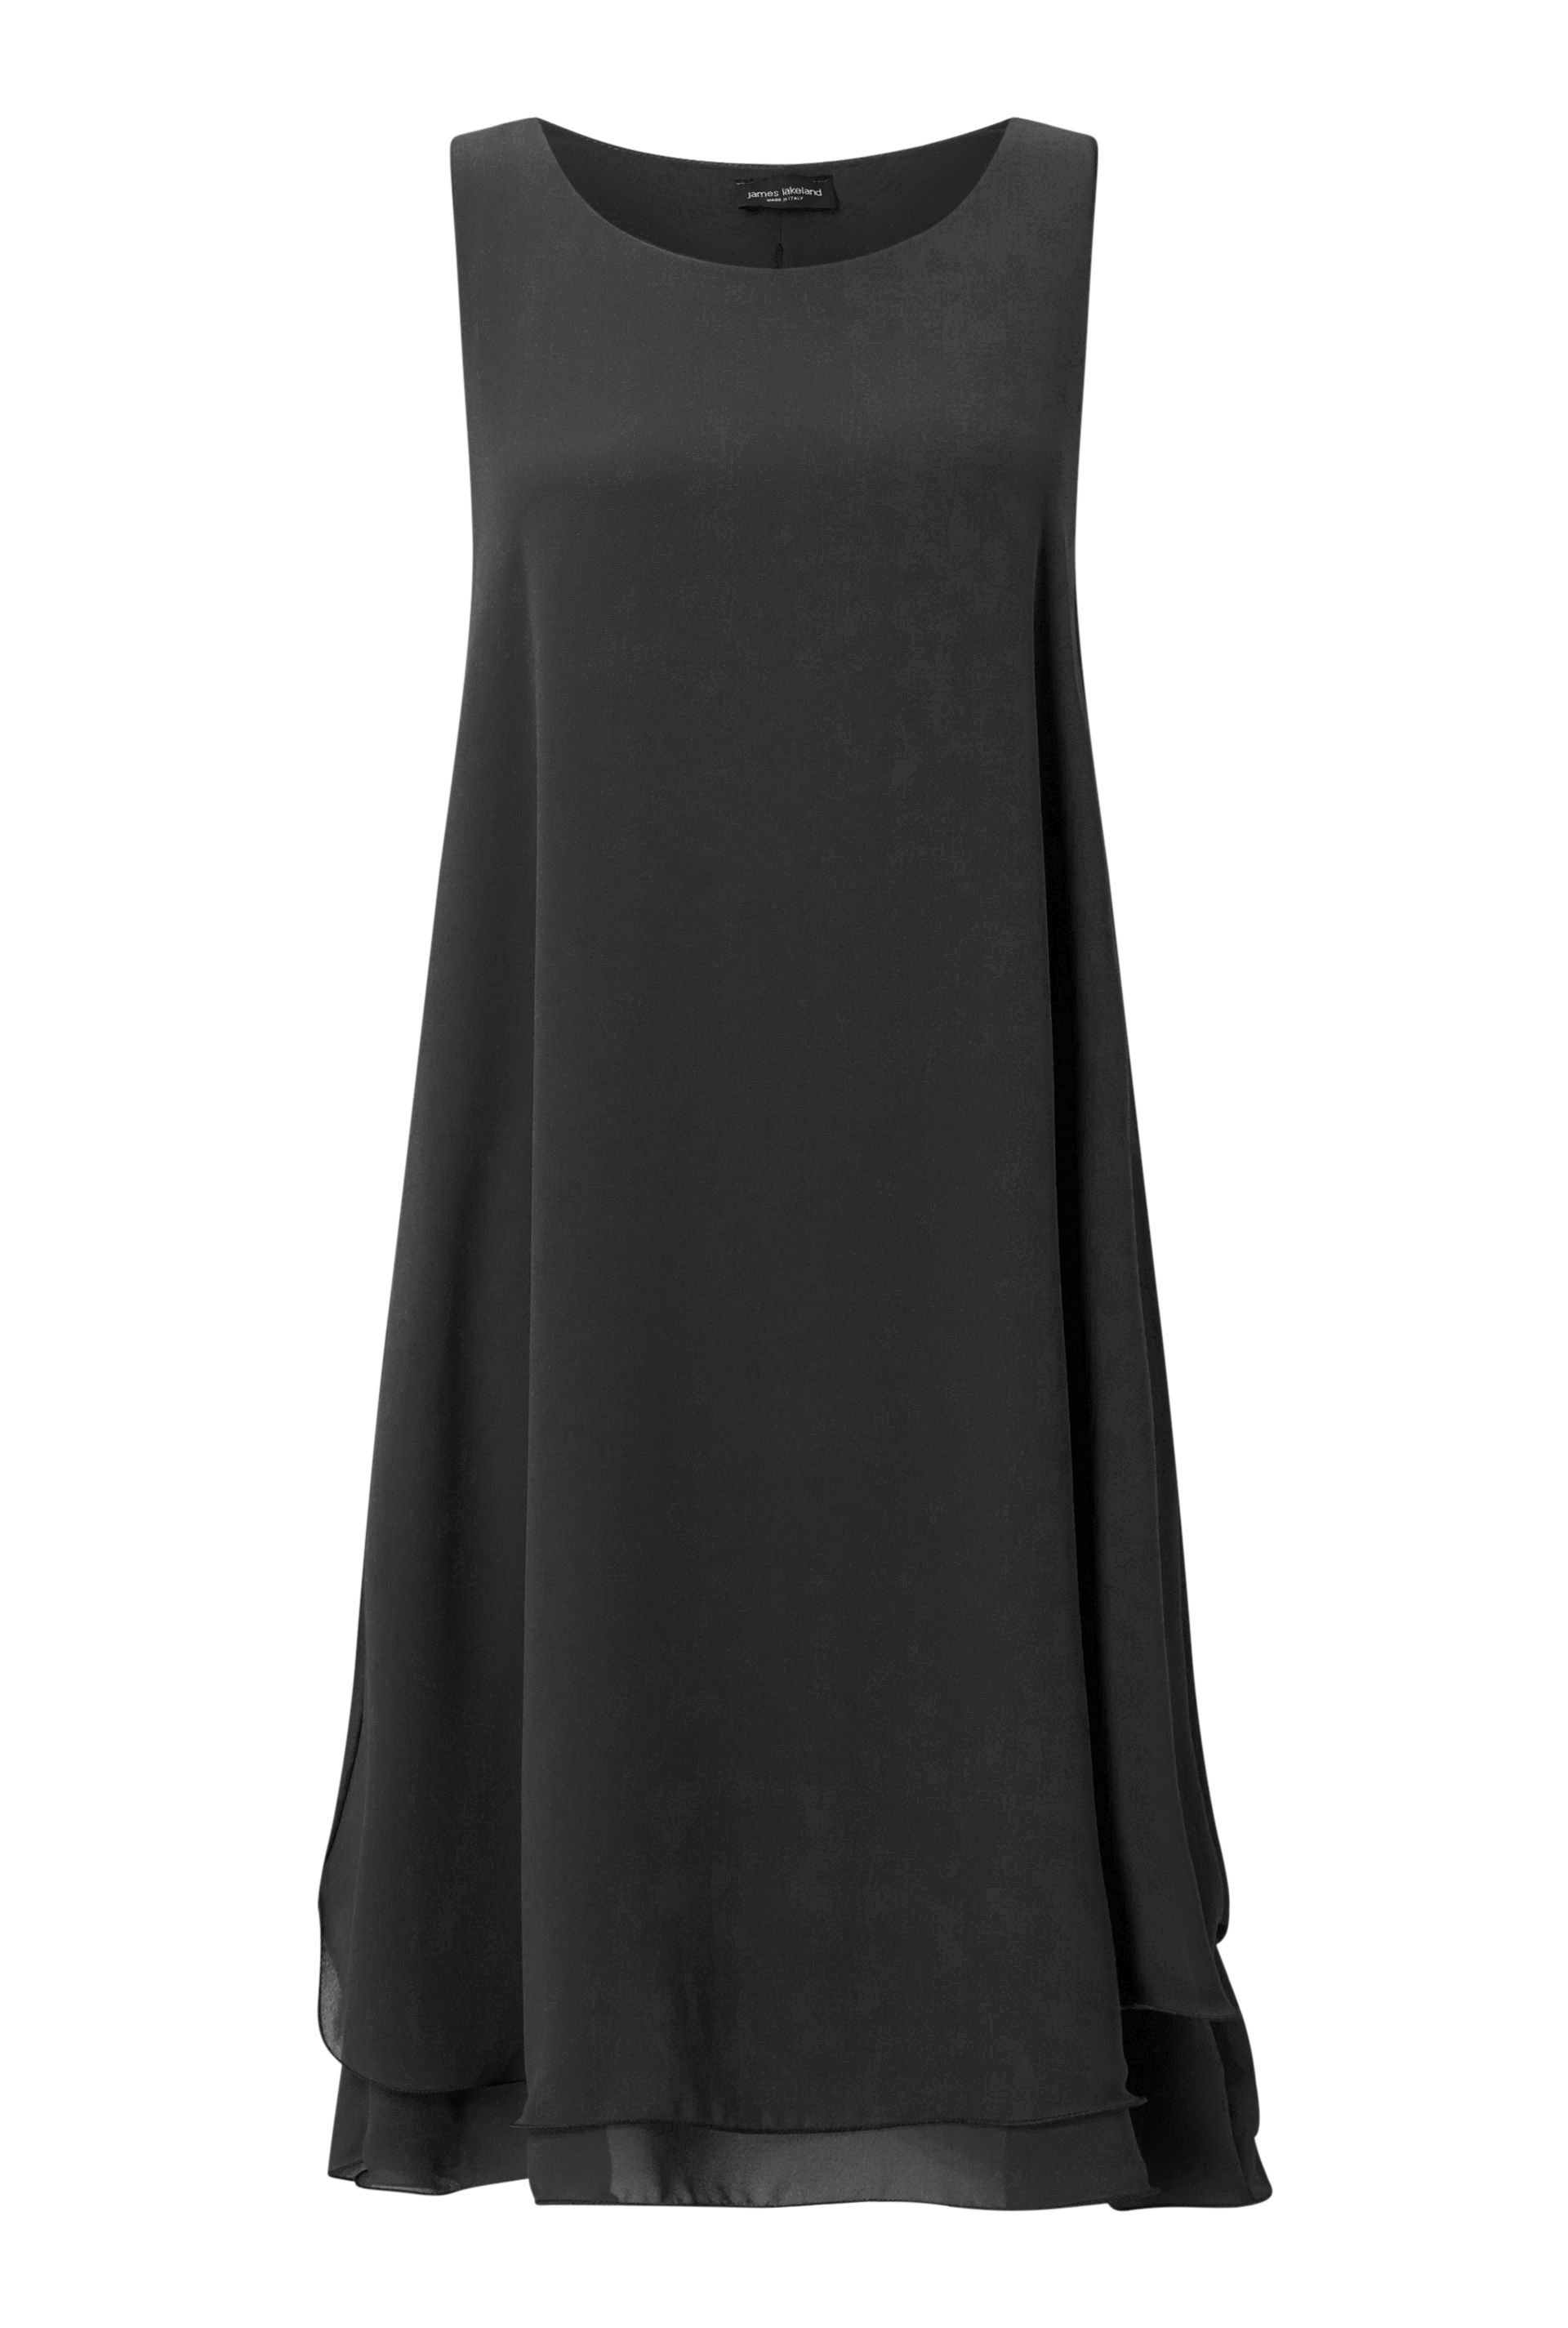 James Lakeland Sleeveless Wave Hem Dress, Black